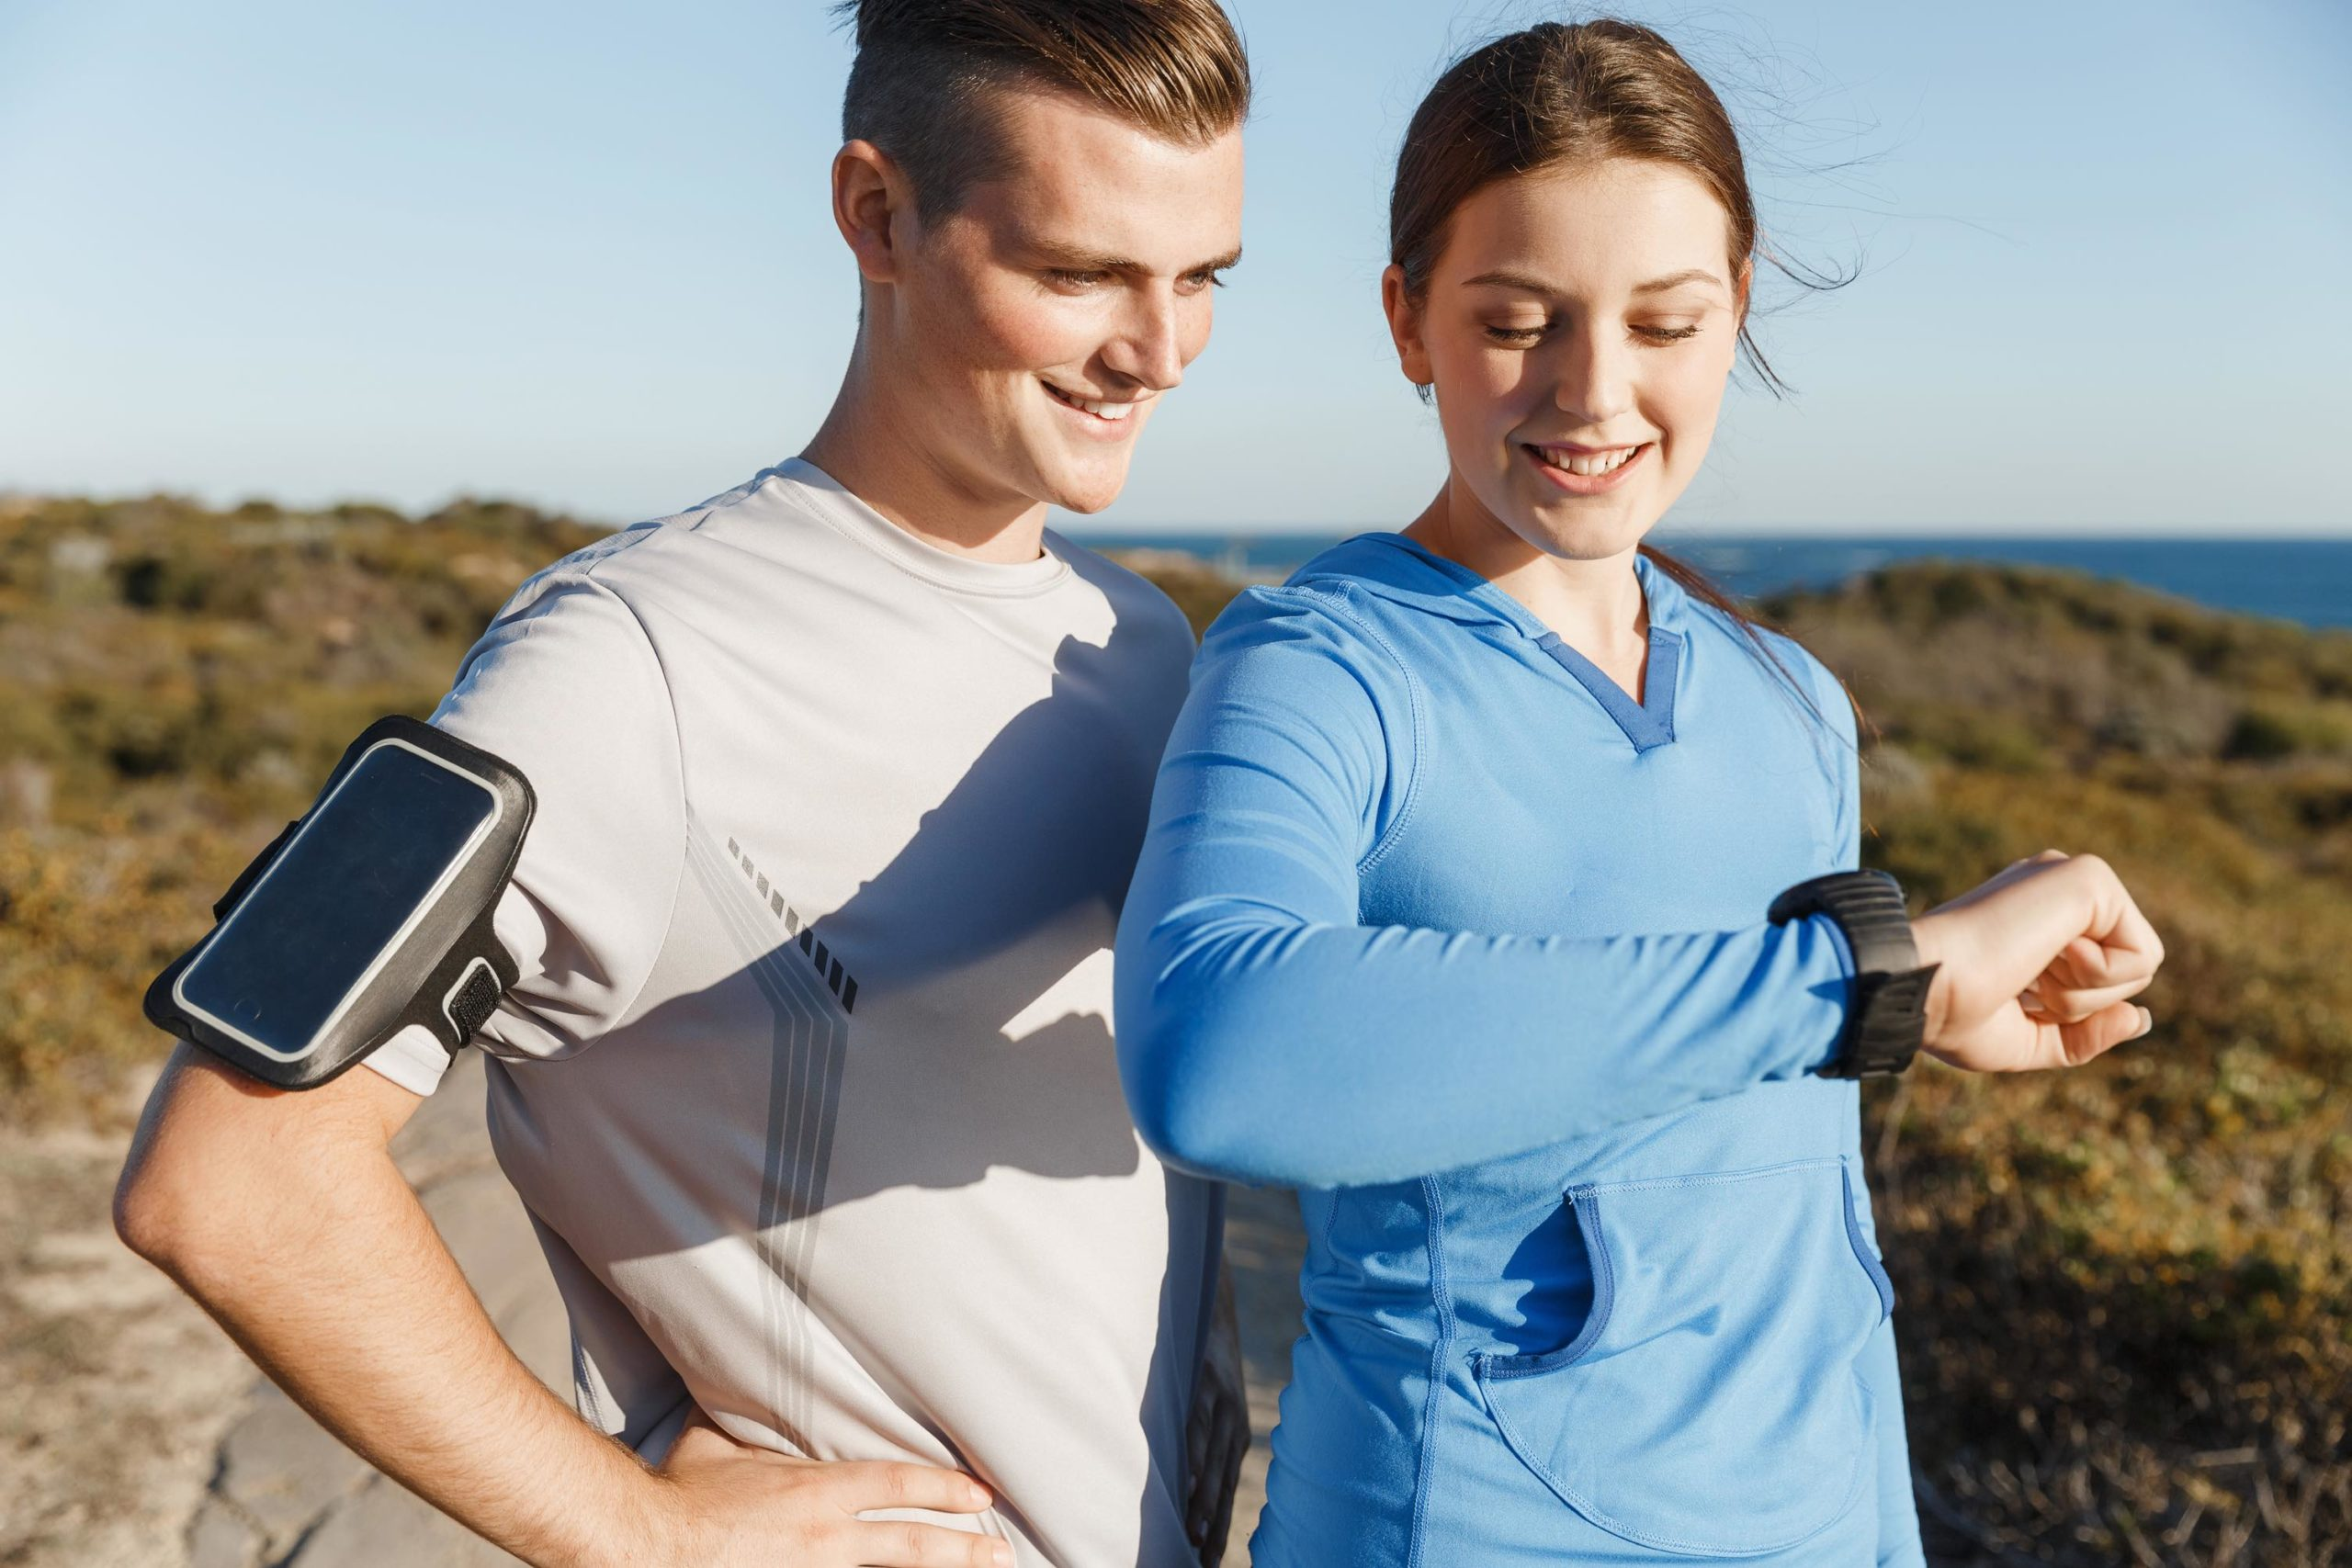 How to optimize your training with heart rate variability (HRV)